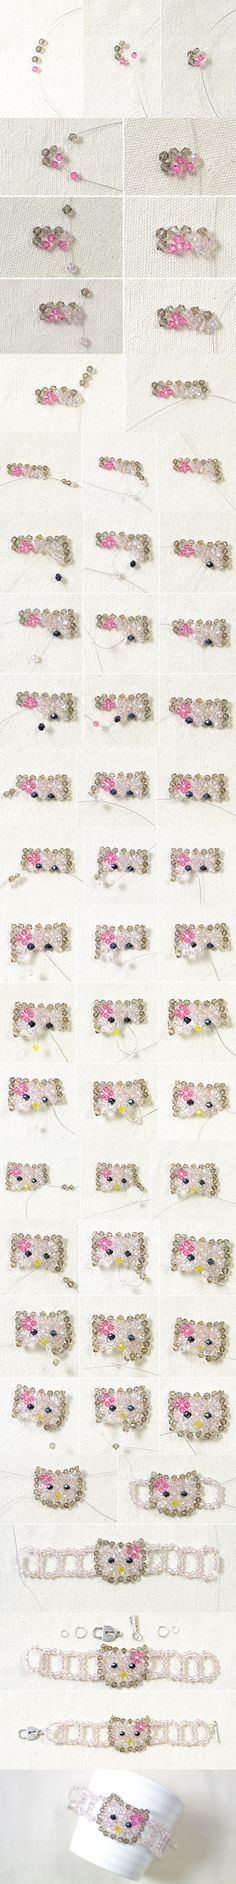 Tutorial on How to Make a Hello Kitty Charm Bead Bracelet for Kids from LC.Pandahall.com                        #pandahall